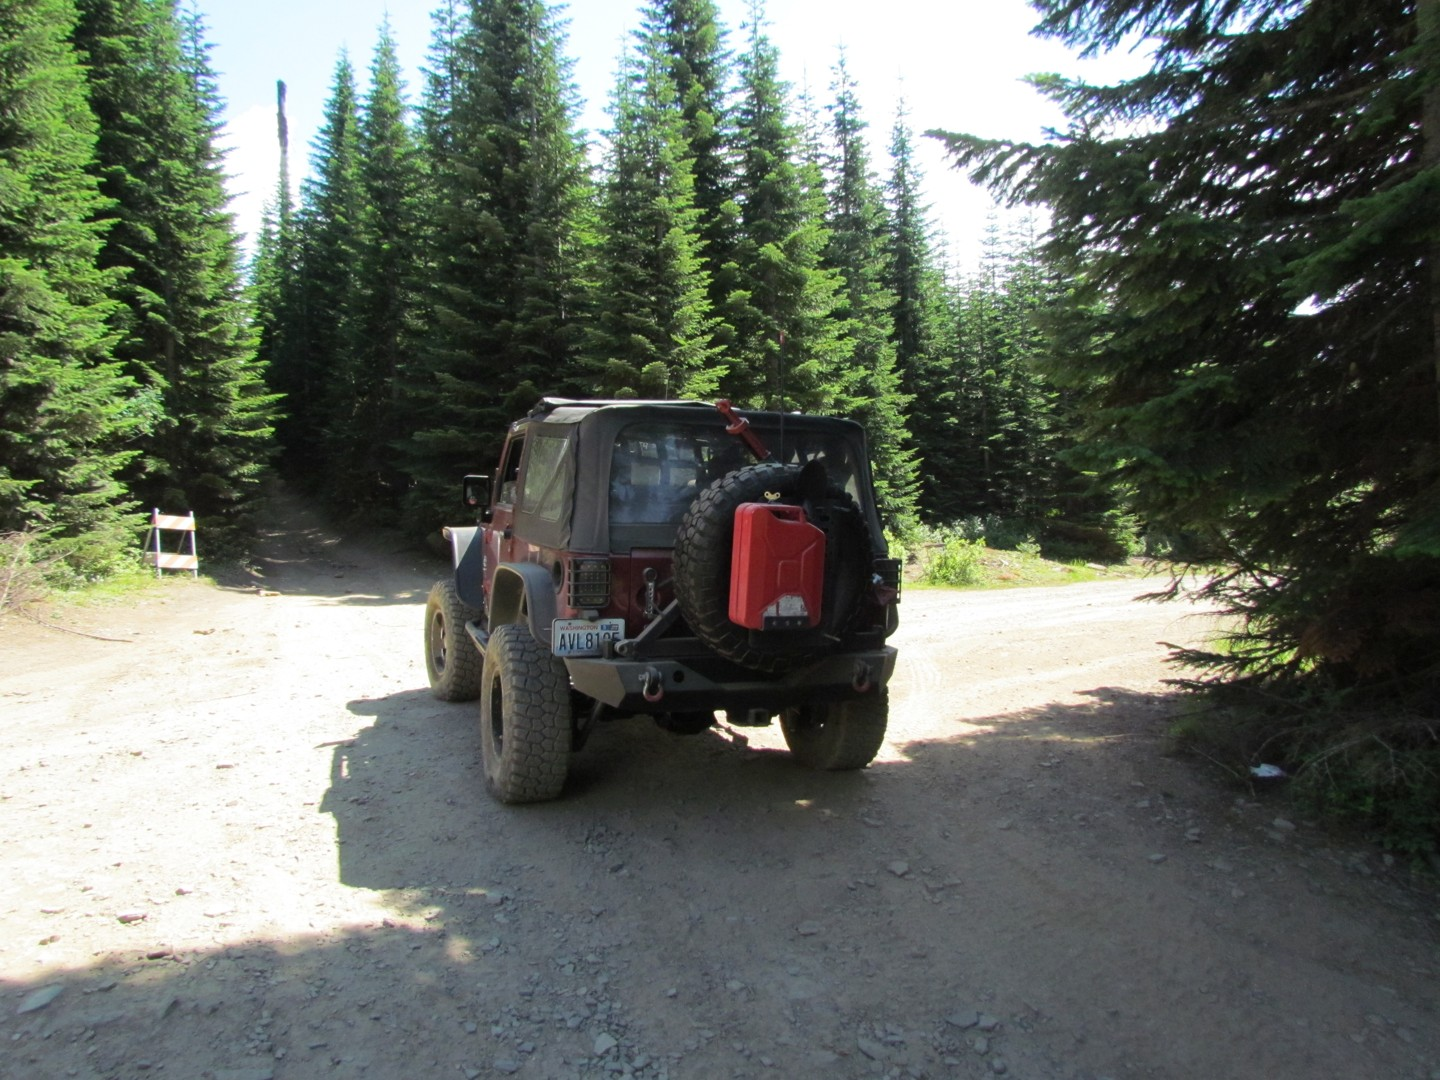 Naches Trail - Waypoint 11: Trail intersection